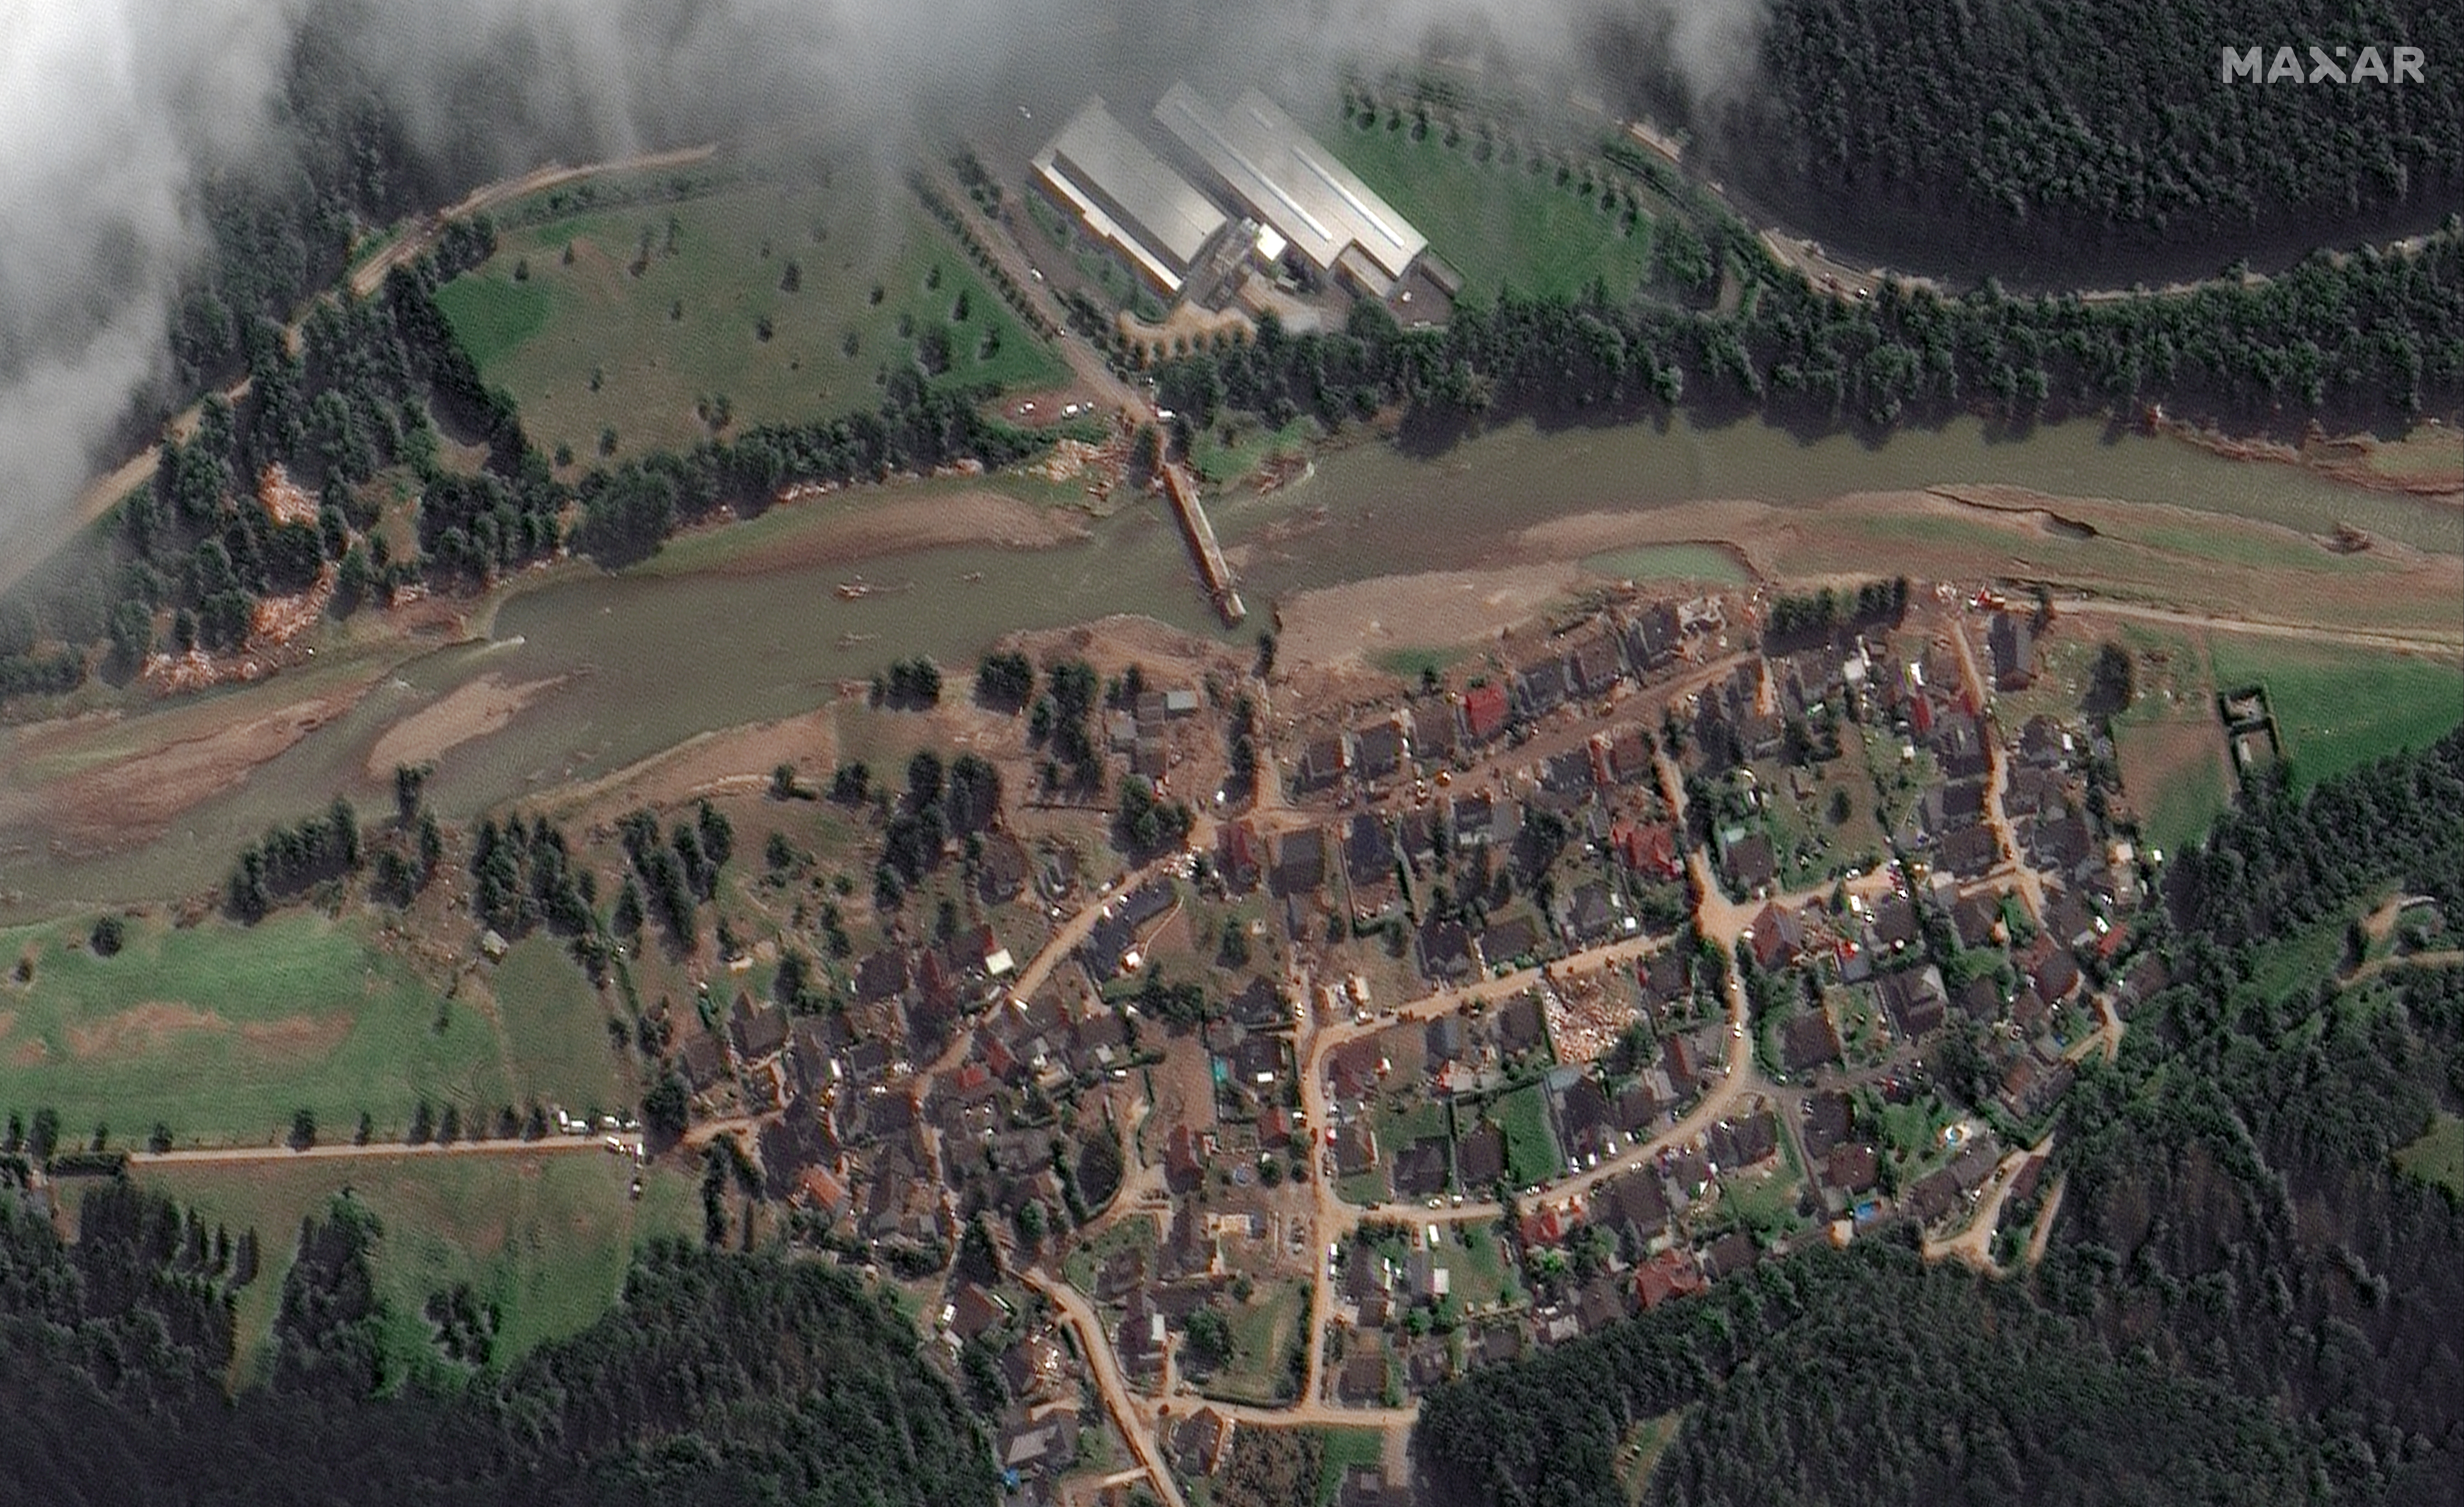 A satellite view shows the city of Liers affected by floods caused by heavy rainfalls, Germany July 18, 2021. Satellite image ©2021 Maxar Technologies/ Handout via REUTERS